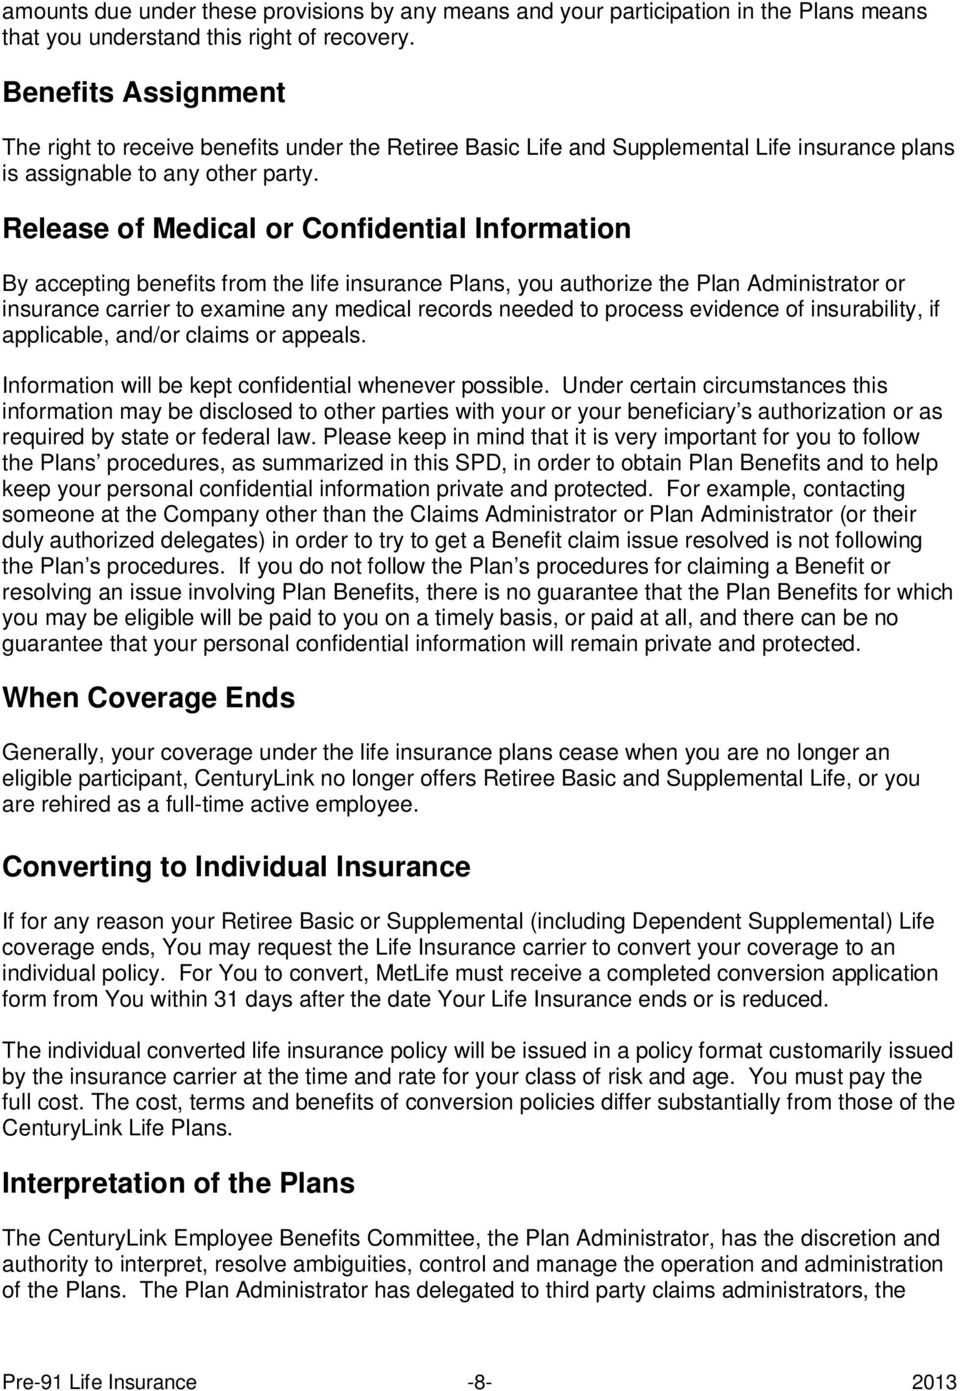 Release of Medical or Confidential Information By accepting benefits from the life insurance Plans, you authorize the Plan Administrator or insurance carrier to examine any medical records needed to